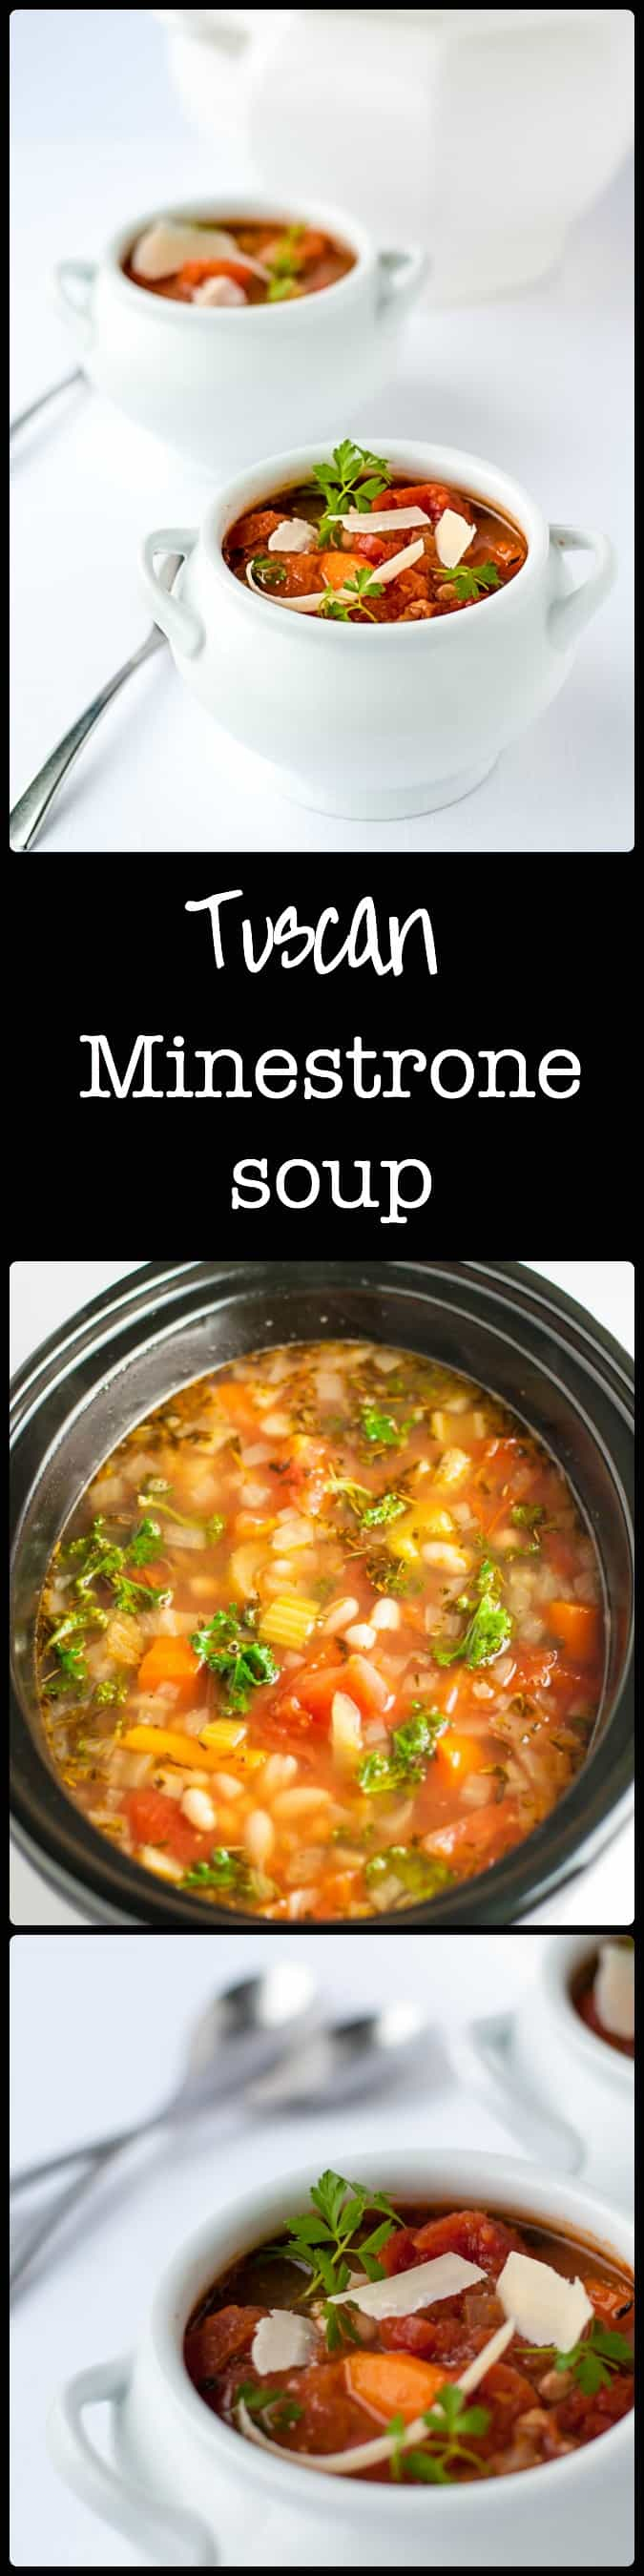 Get the recipe for this One-Pot Healthy and Hearty Tuscan Minestrone Soup. Brimming with rich Italian tomato flavour, this is an easy meatless slow cooker soup. Set it and forget it! Vegetarian.